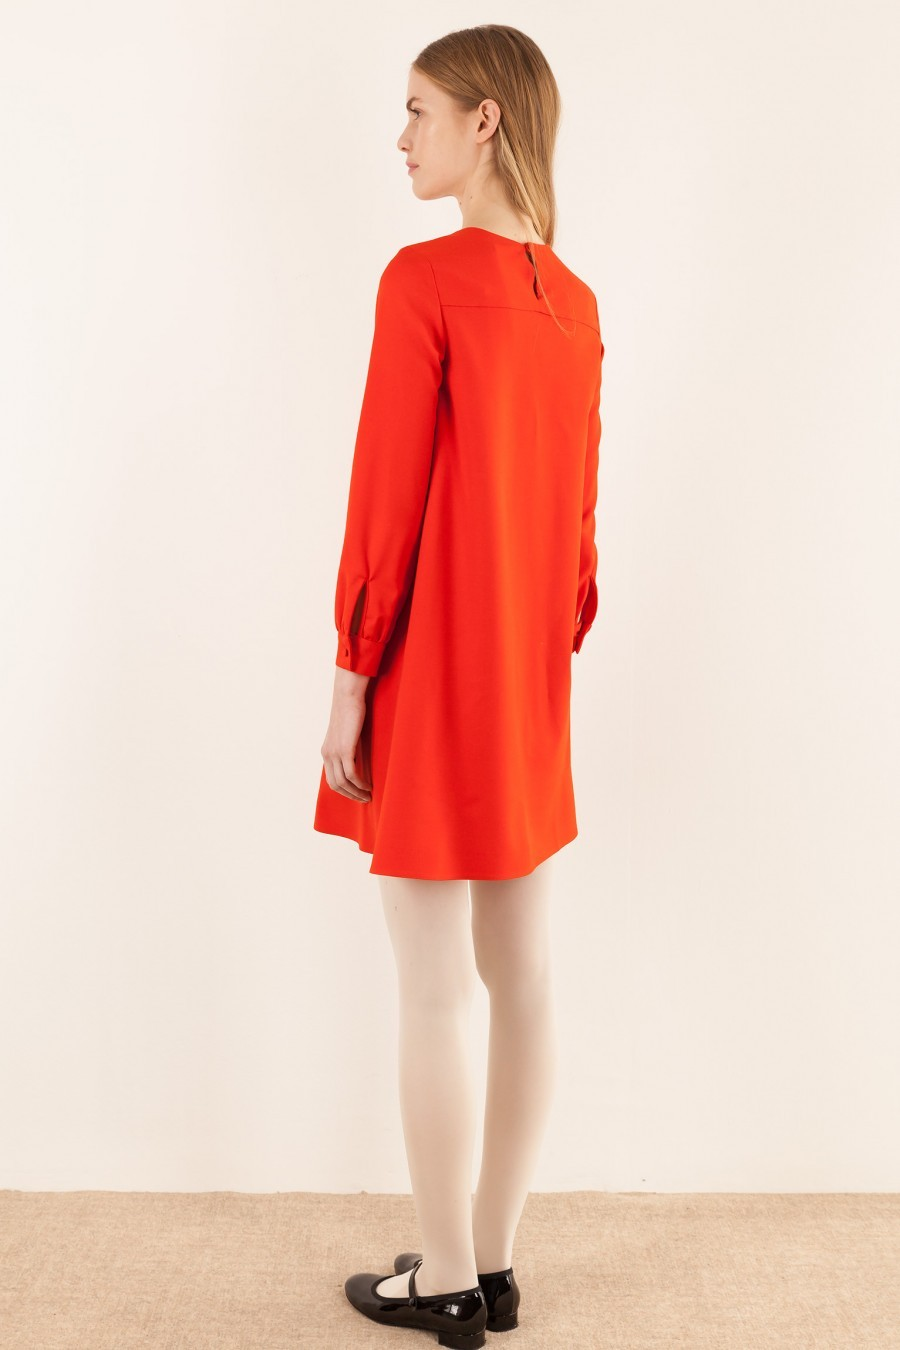 Red dress with yoke